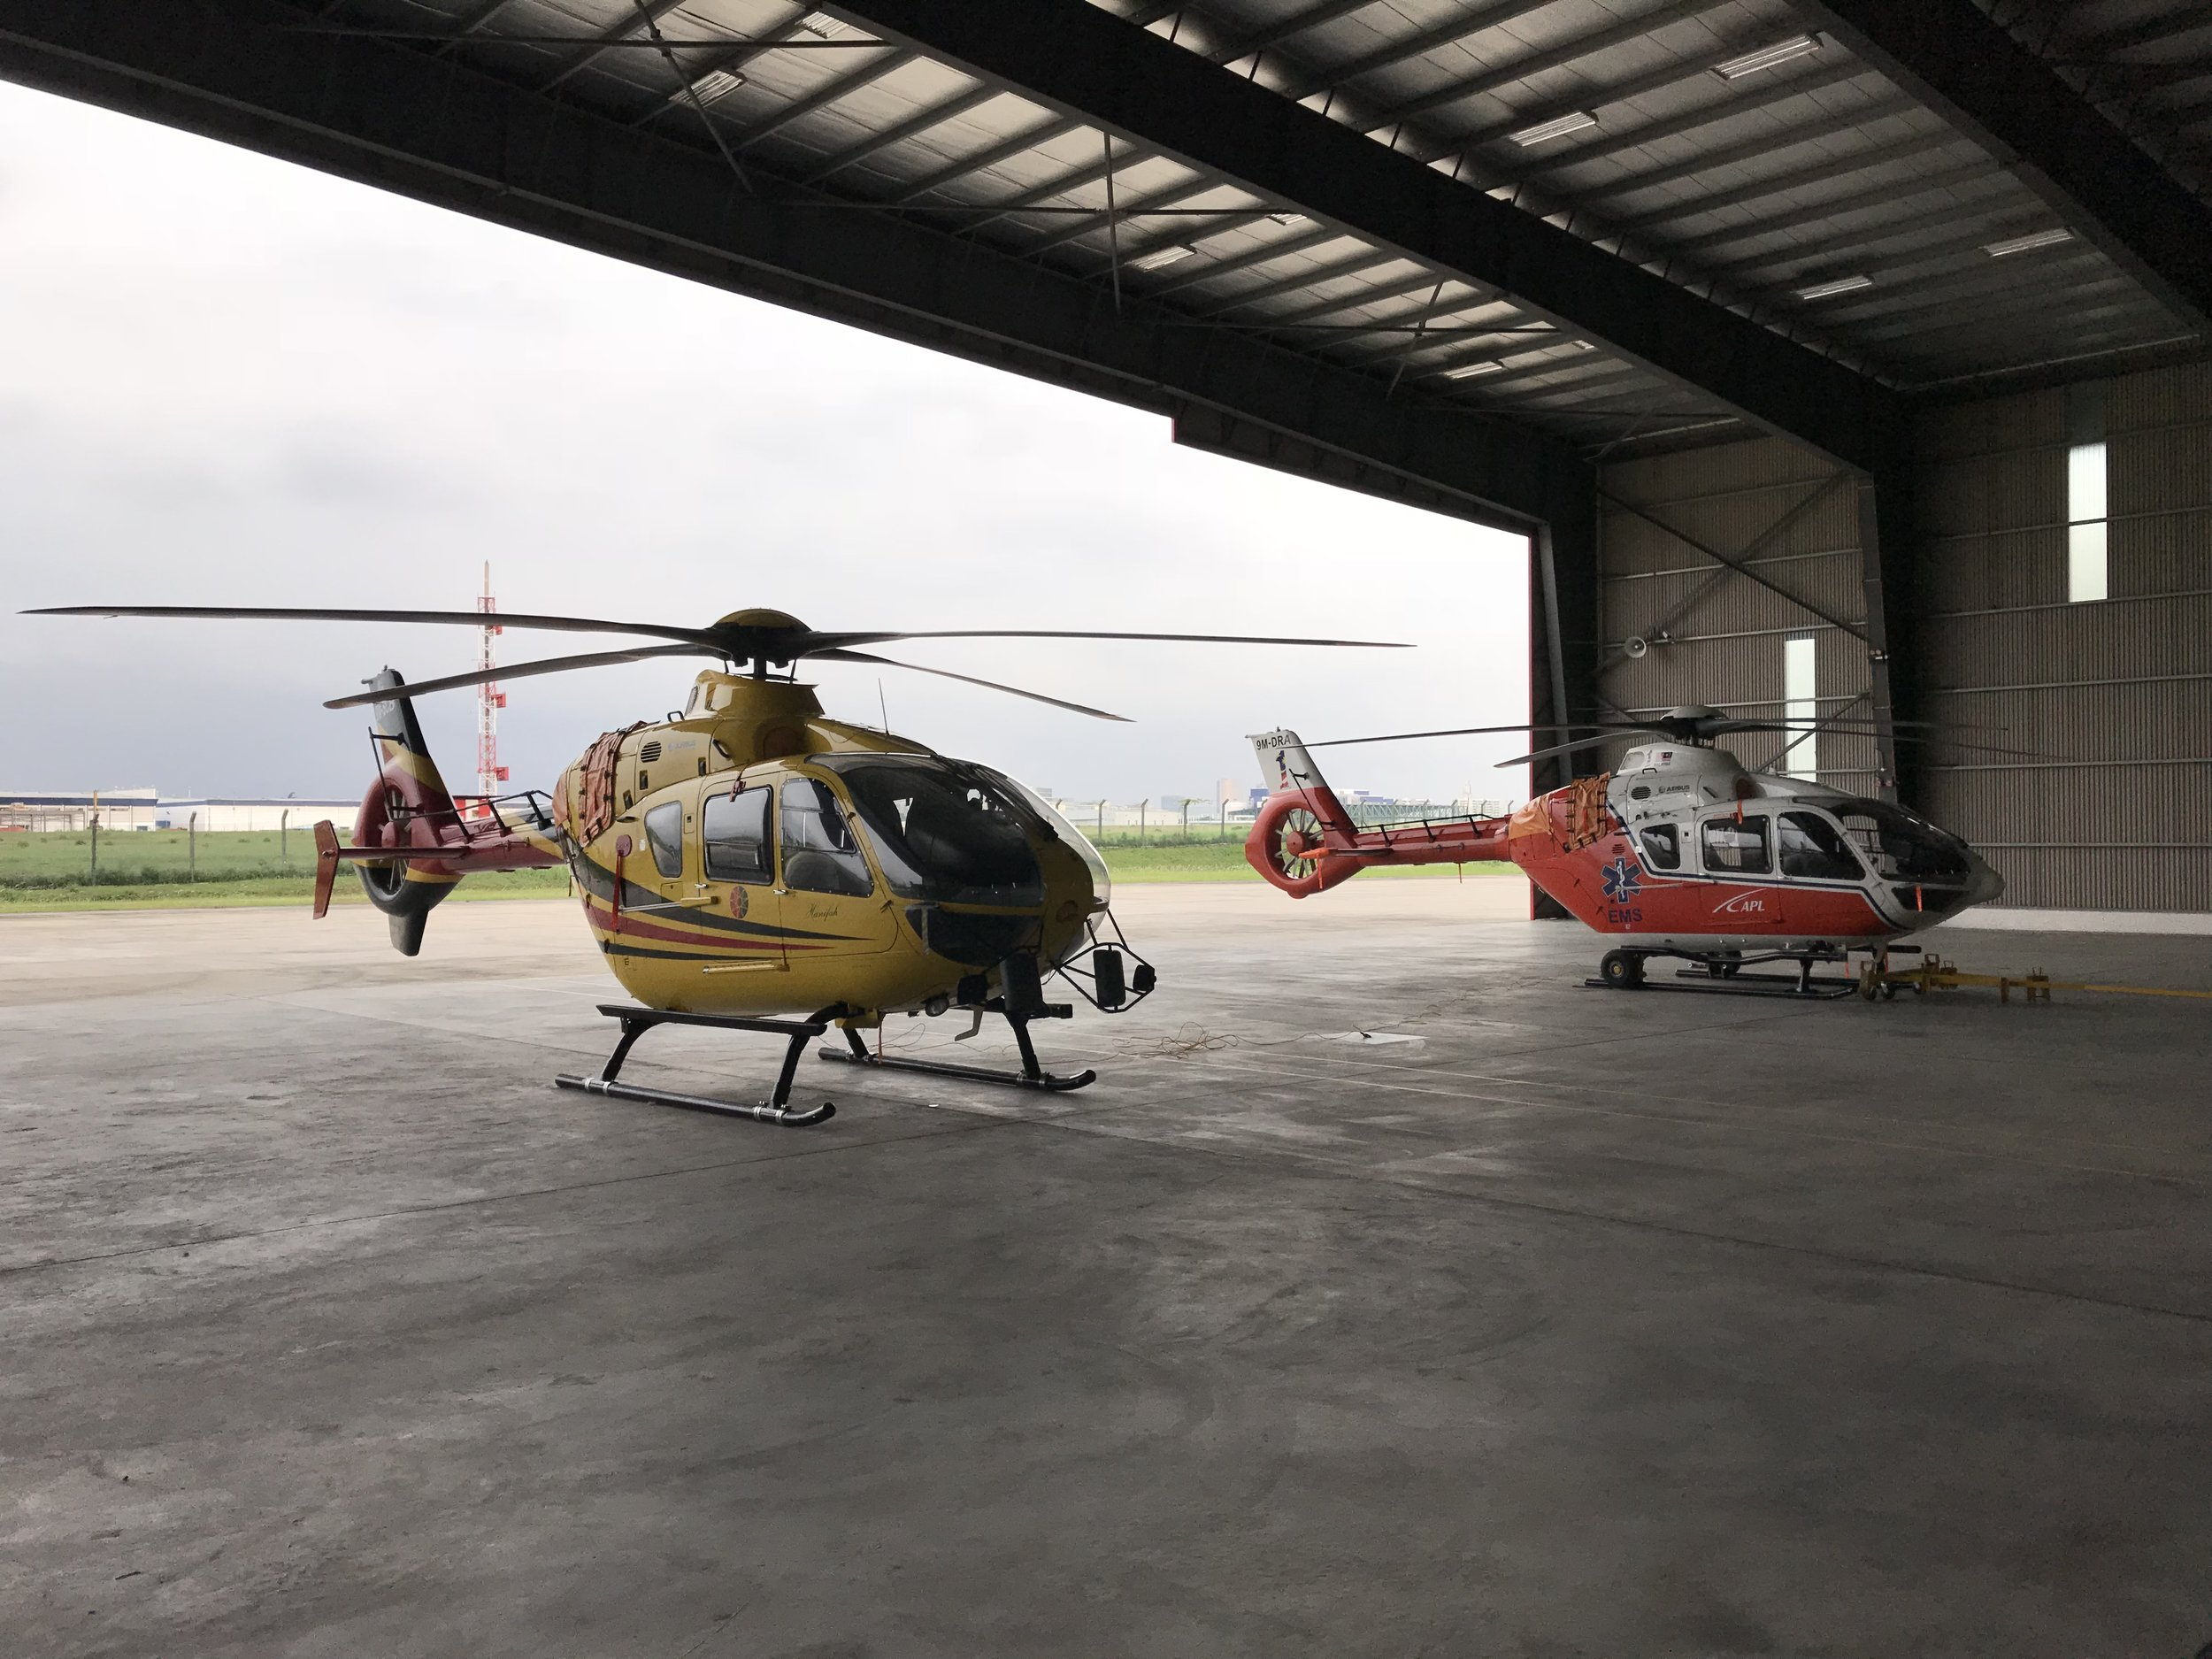 EC 135 P3 and EC 135 T2 docking at hangar